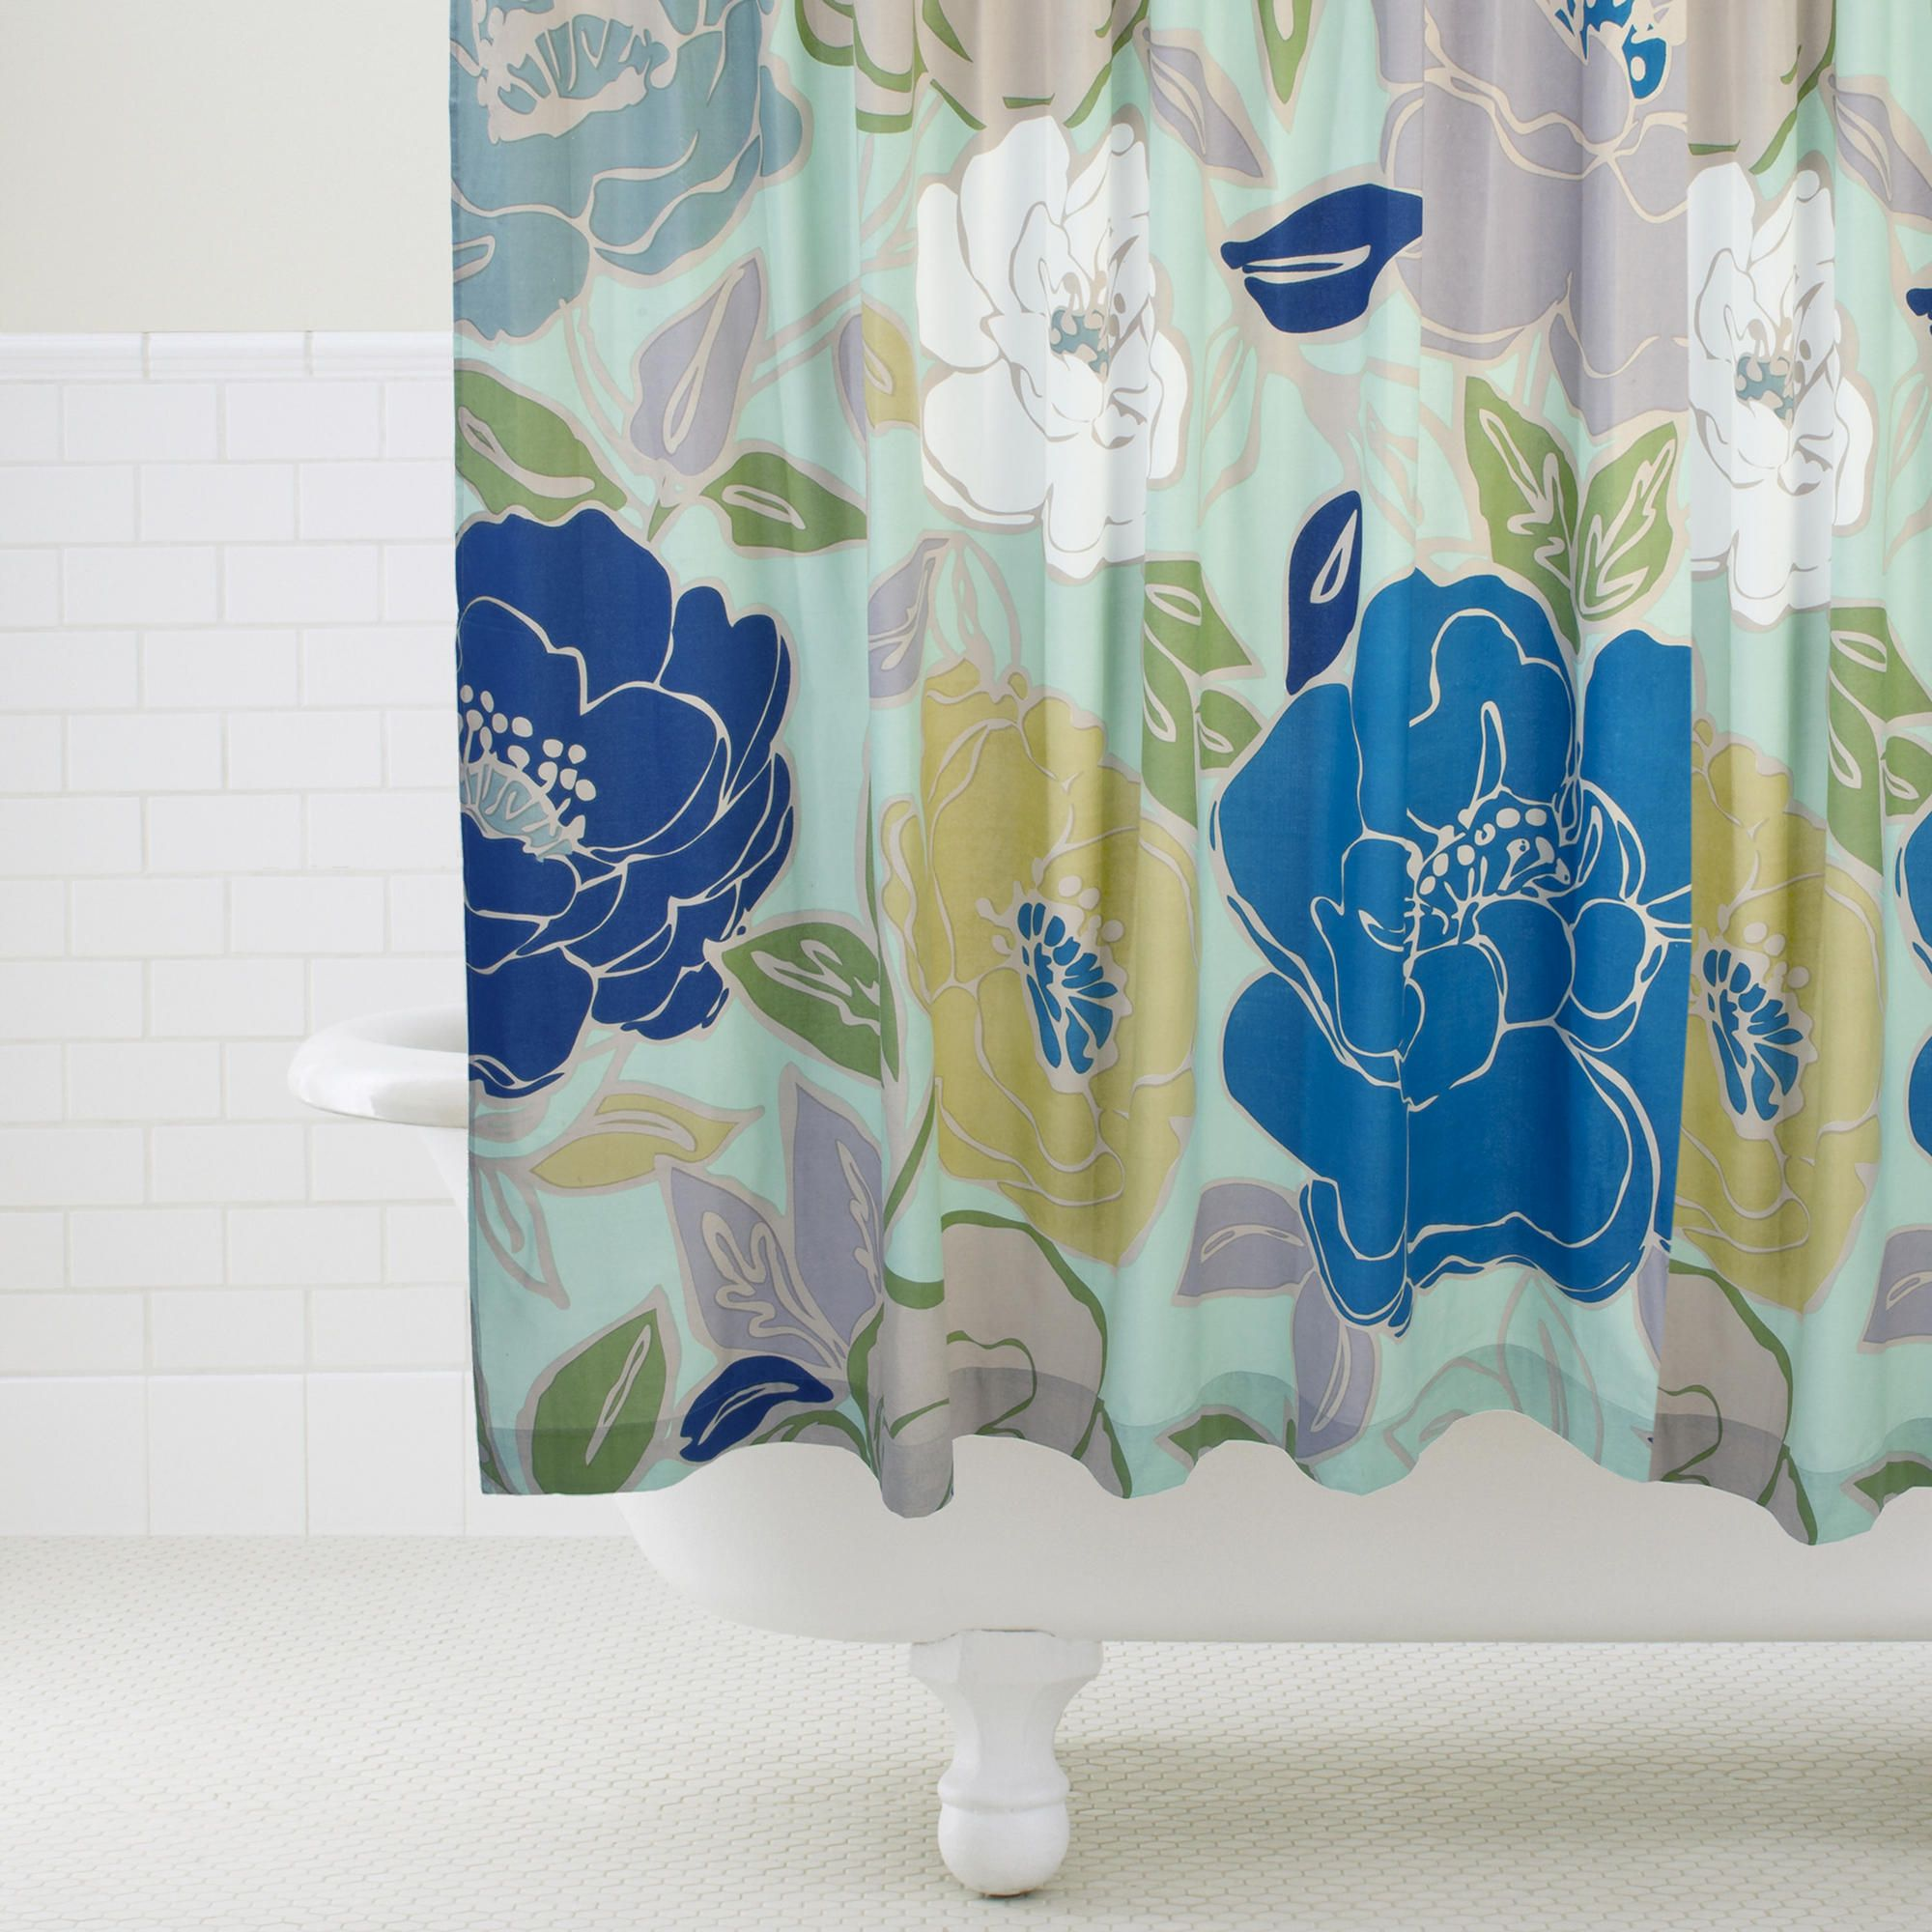 Painterly Floral Shower Curtain World Market Floral Shower Curtains Floral Shower Shower Curtain